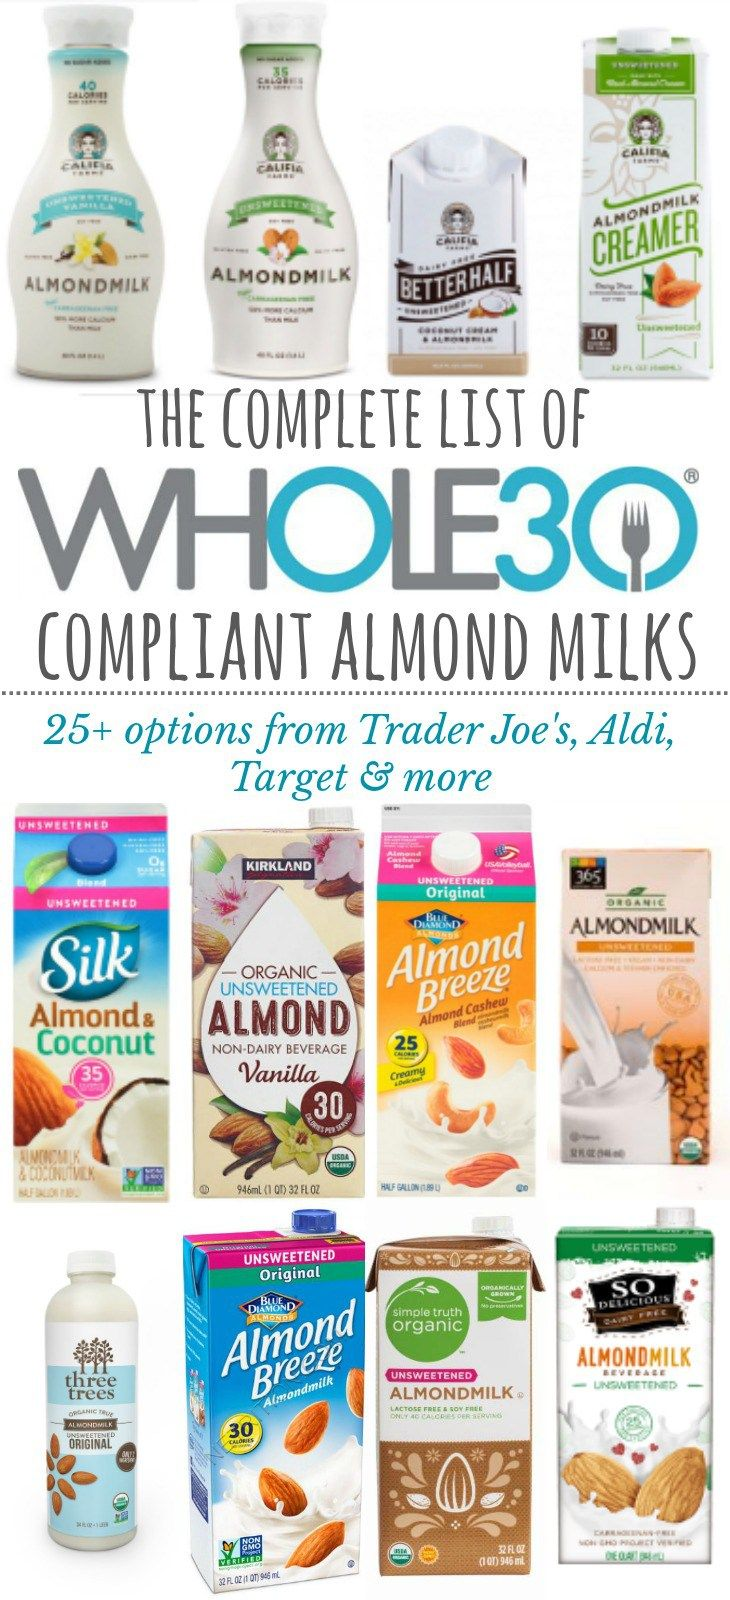 Whole30 Compliant Almond Milk Brands: The Complete List For 2018 - Whole Kitchen Sink -   17 diet Clean Eating almond milk ideas